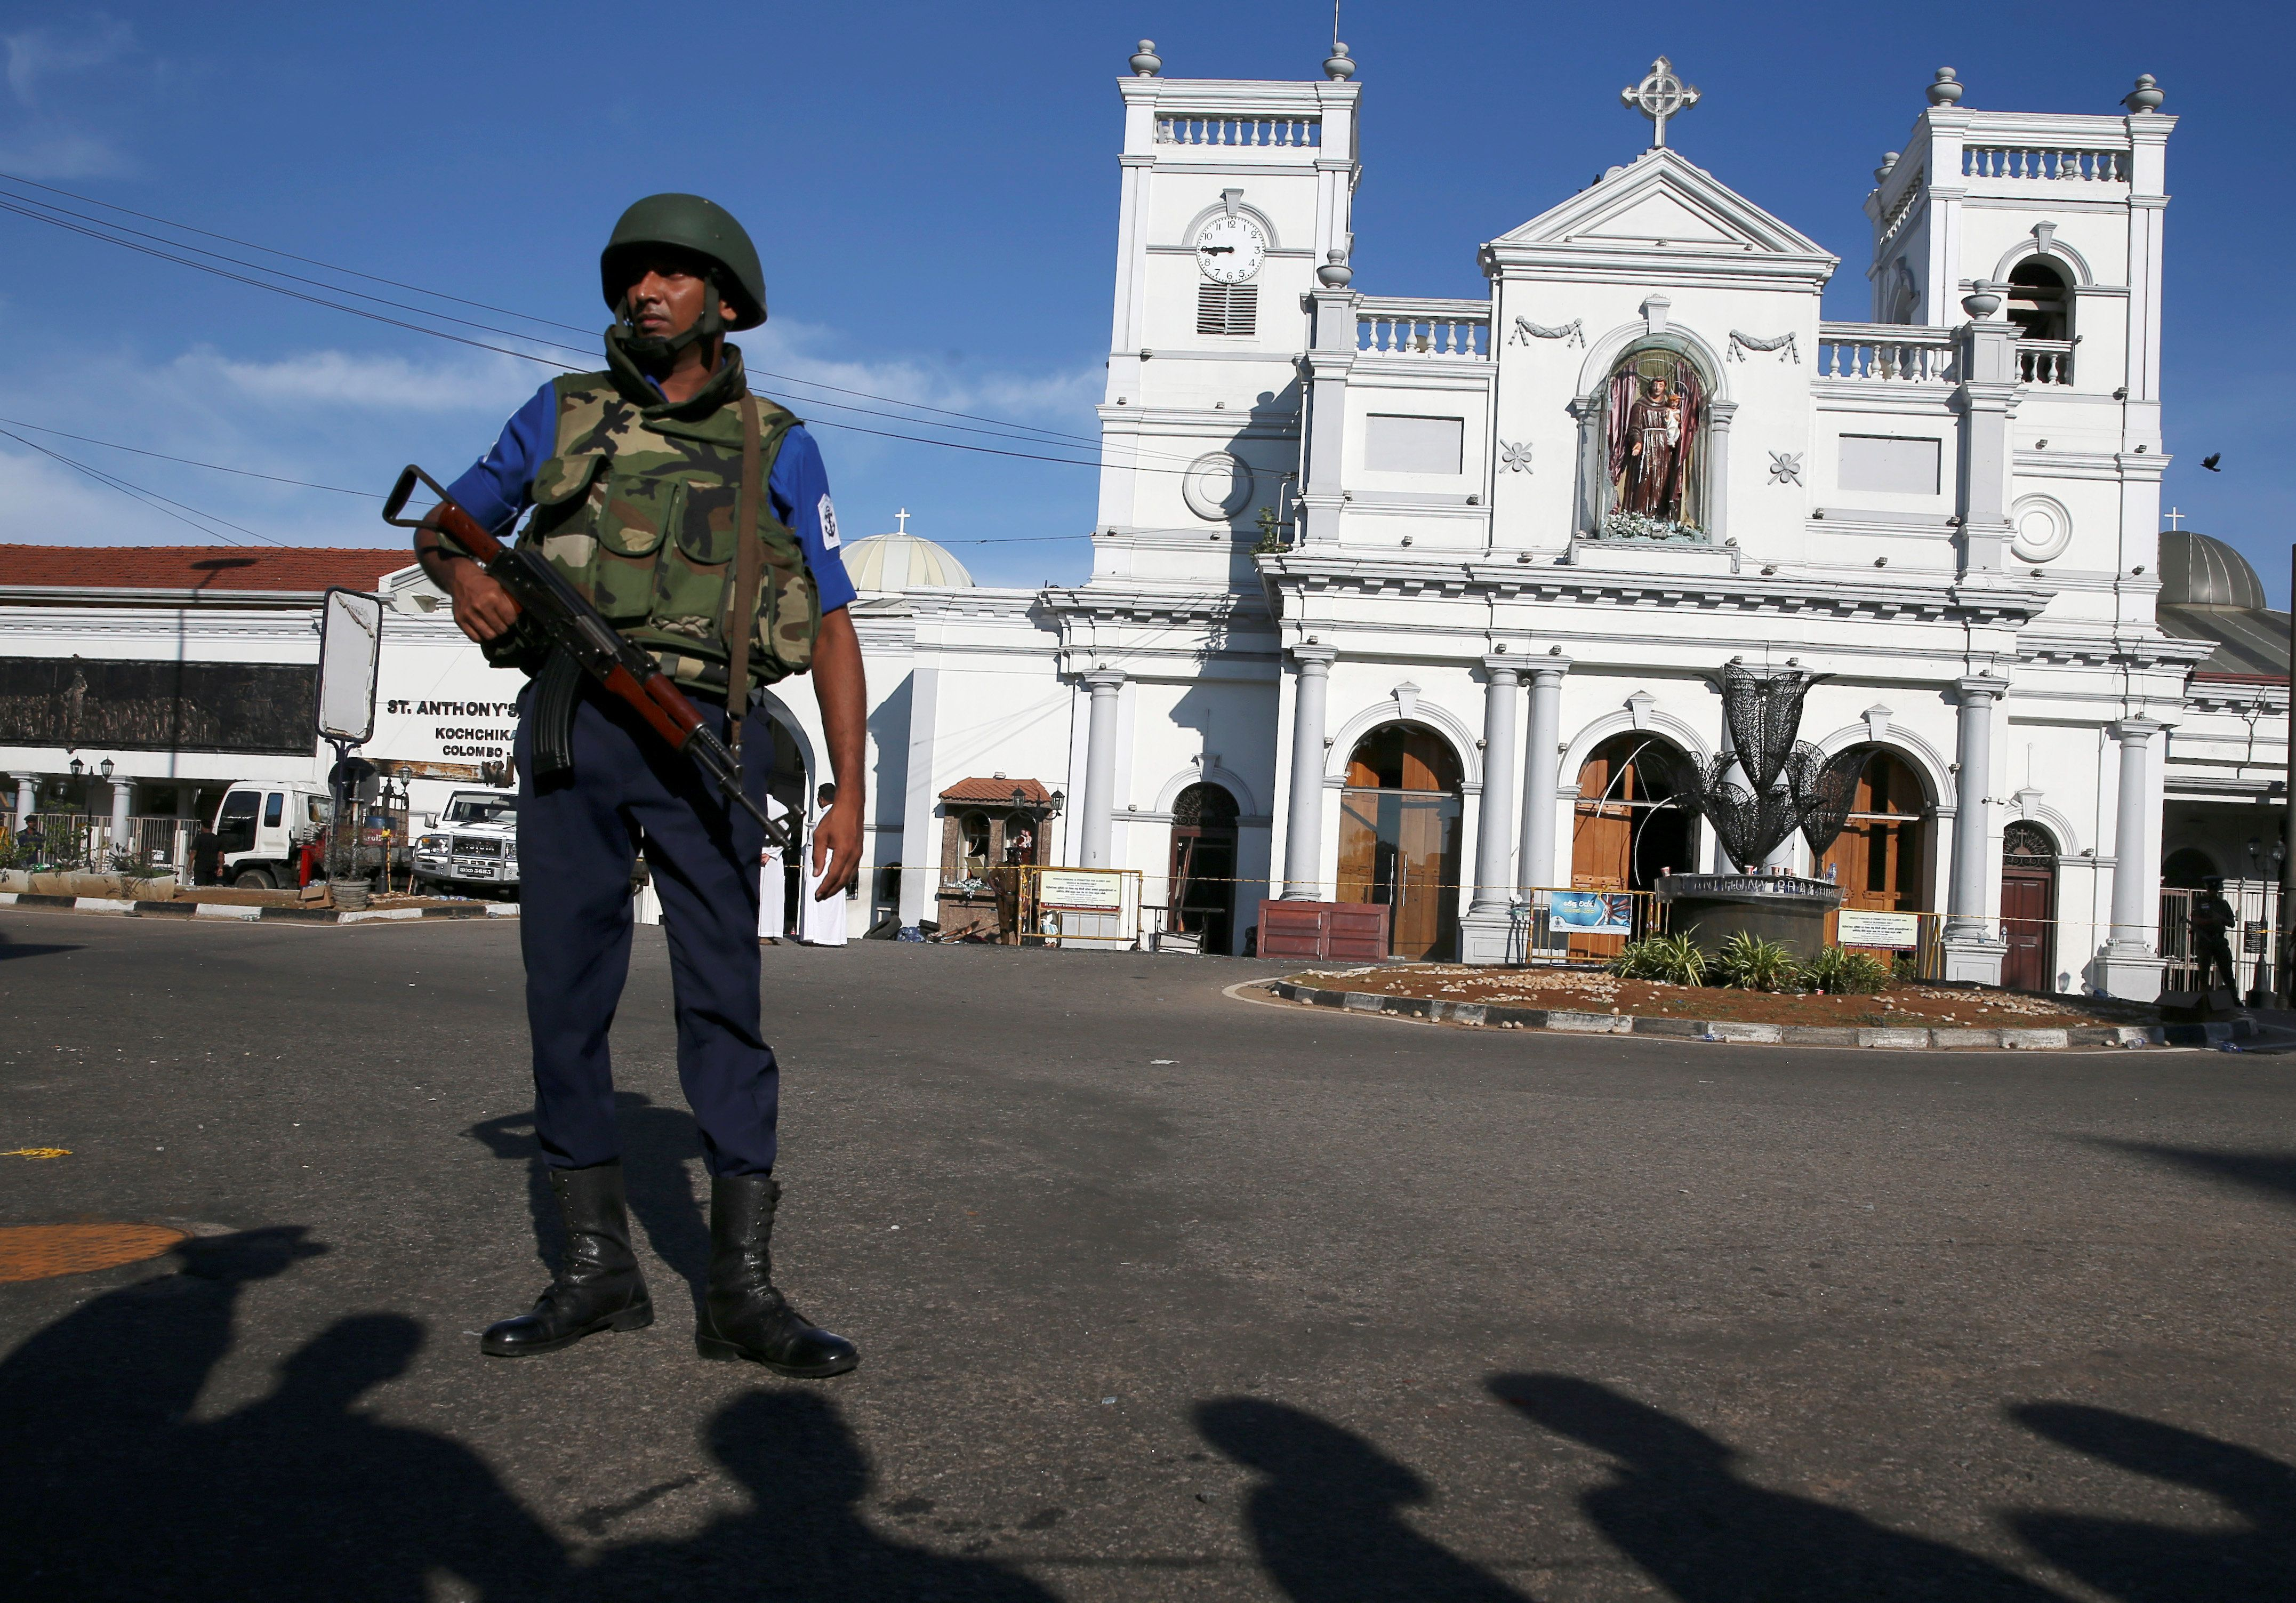 Un mouvement islamiste local à l'origine des explosions au Sri Lanka, selon le